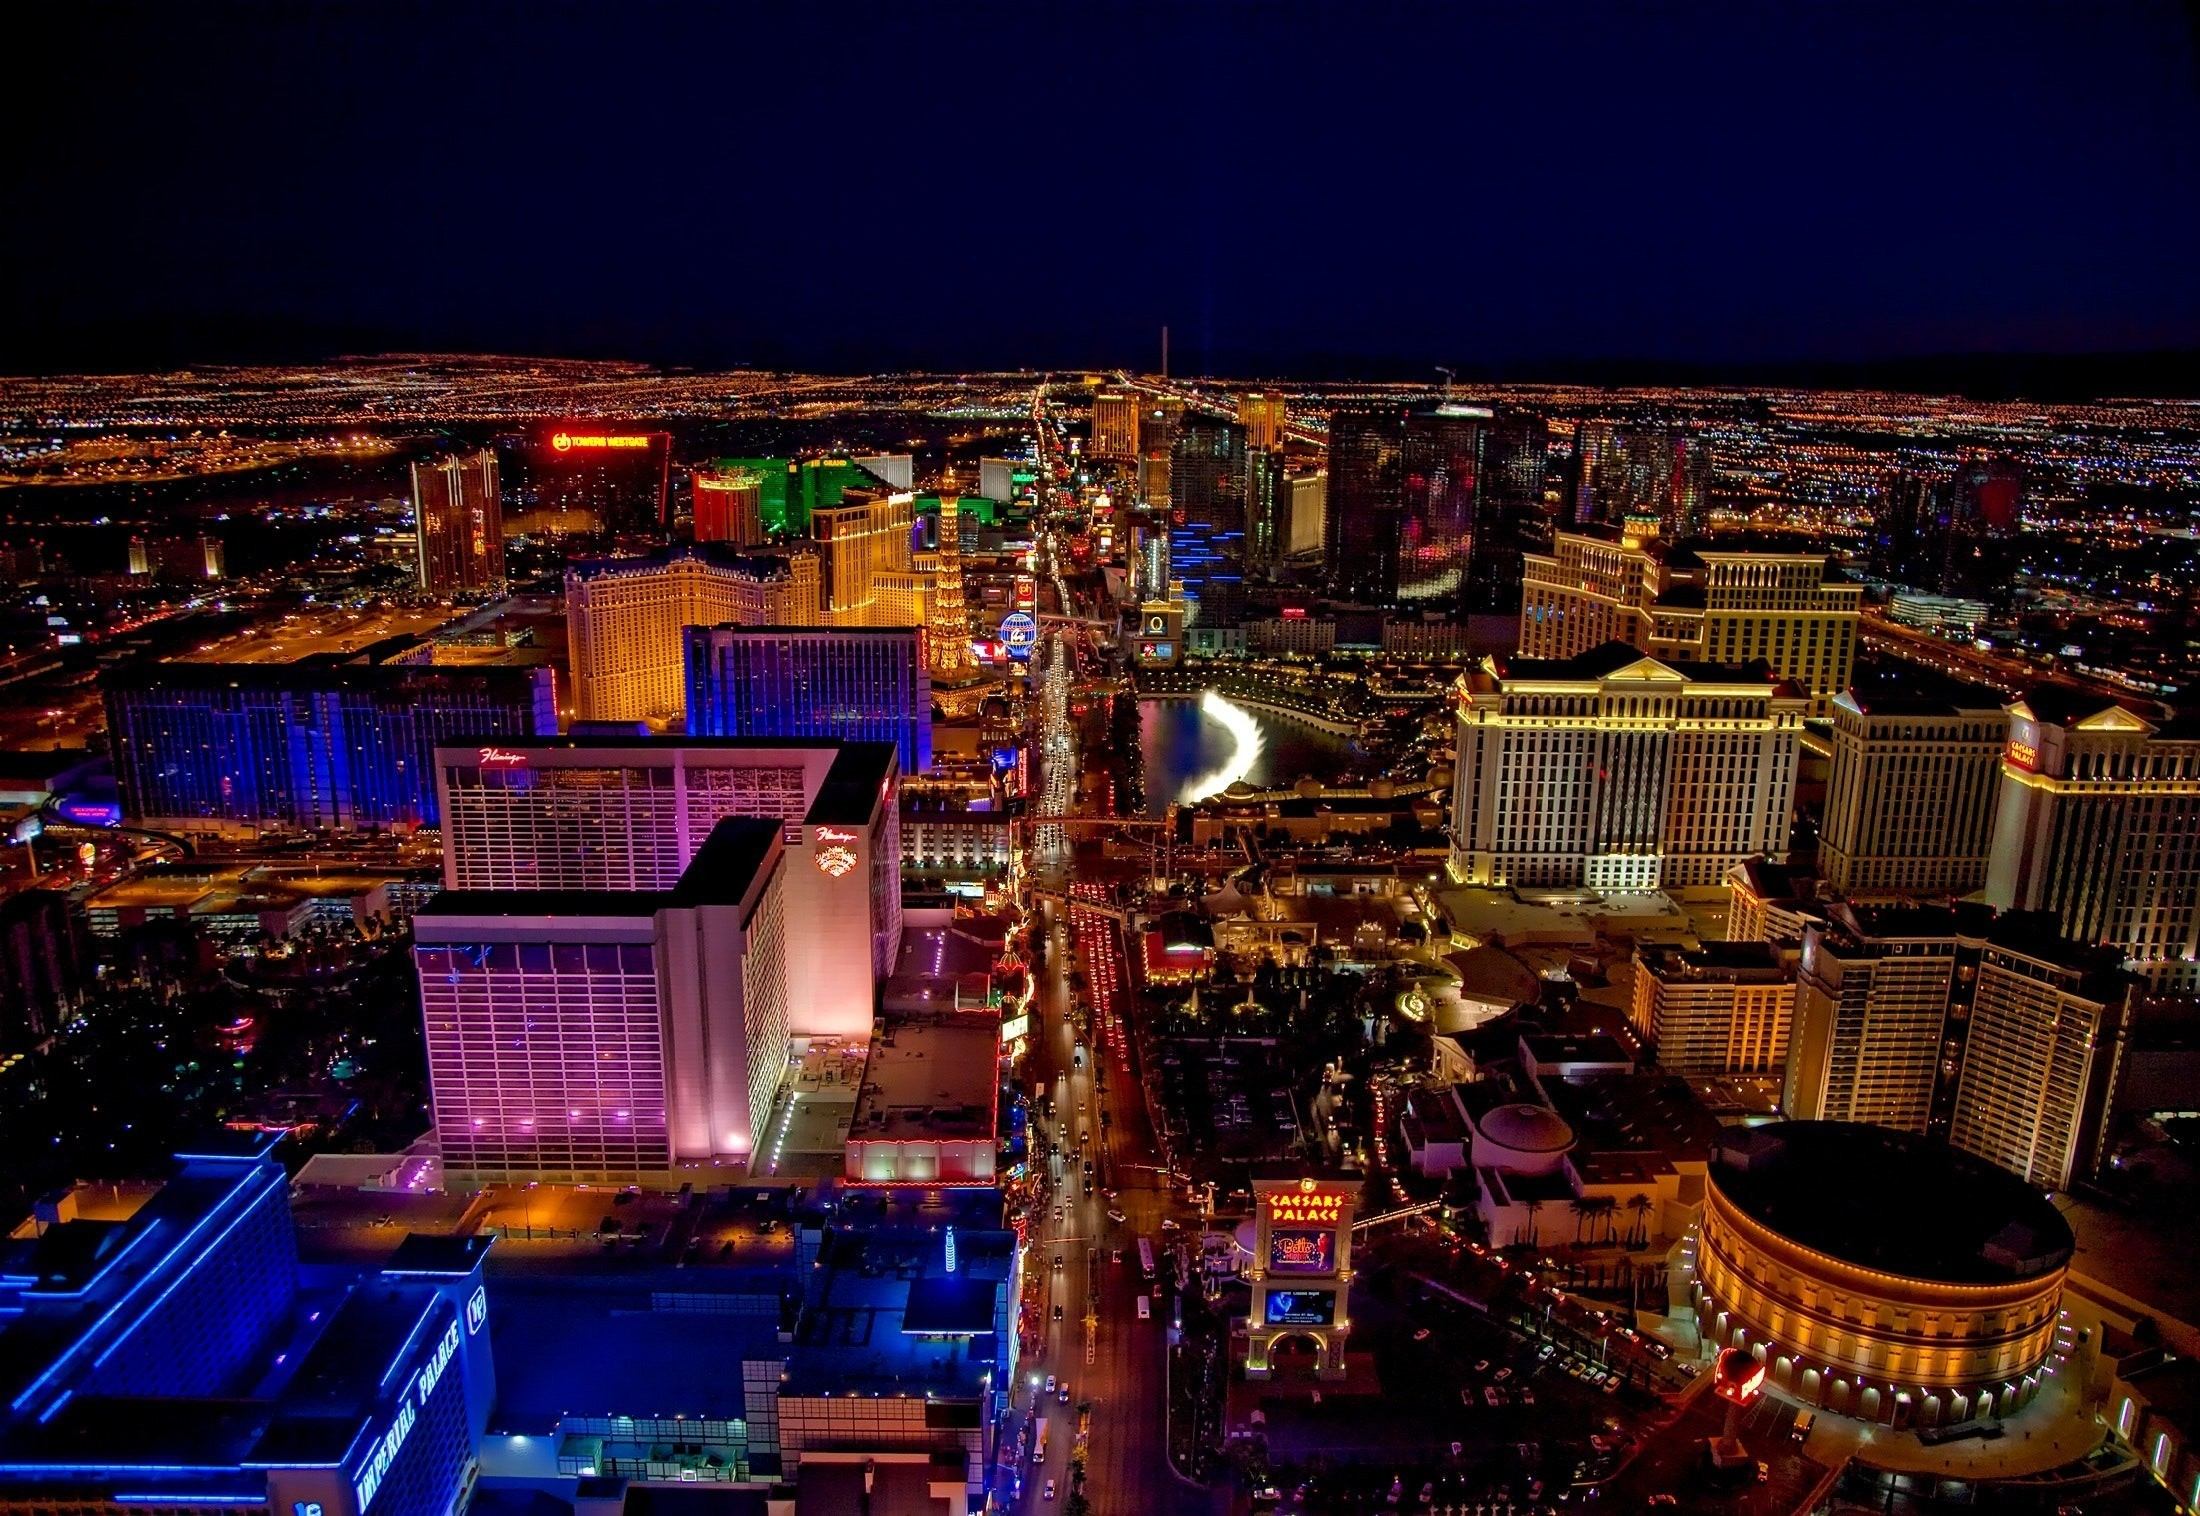 Flight Deal Round Trip From Chicago Area to Las Vegas #chicago #lasvegas